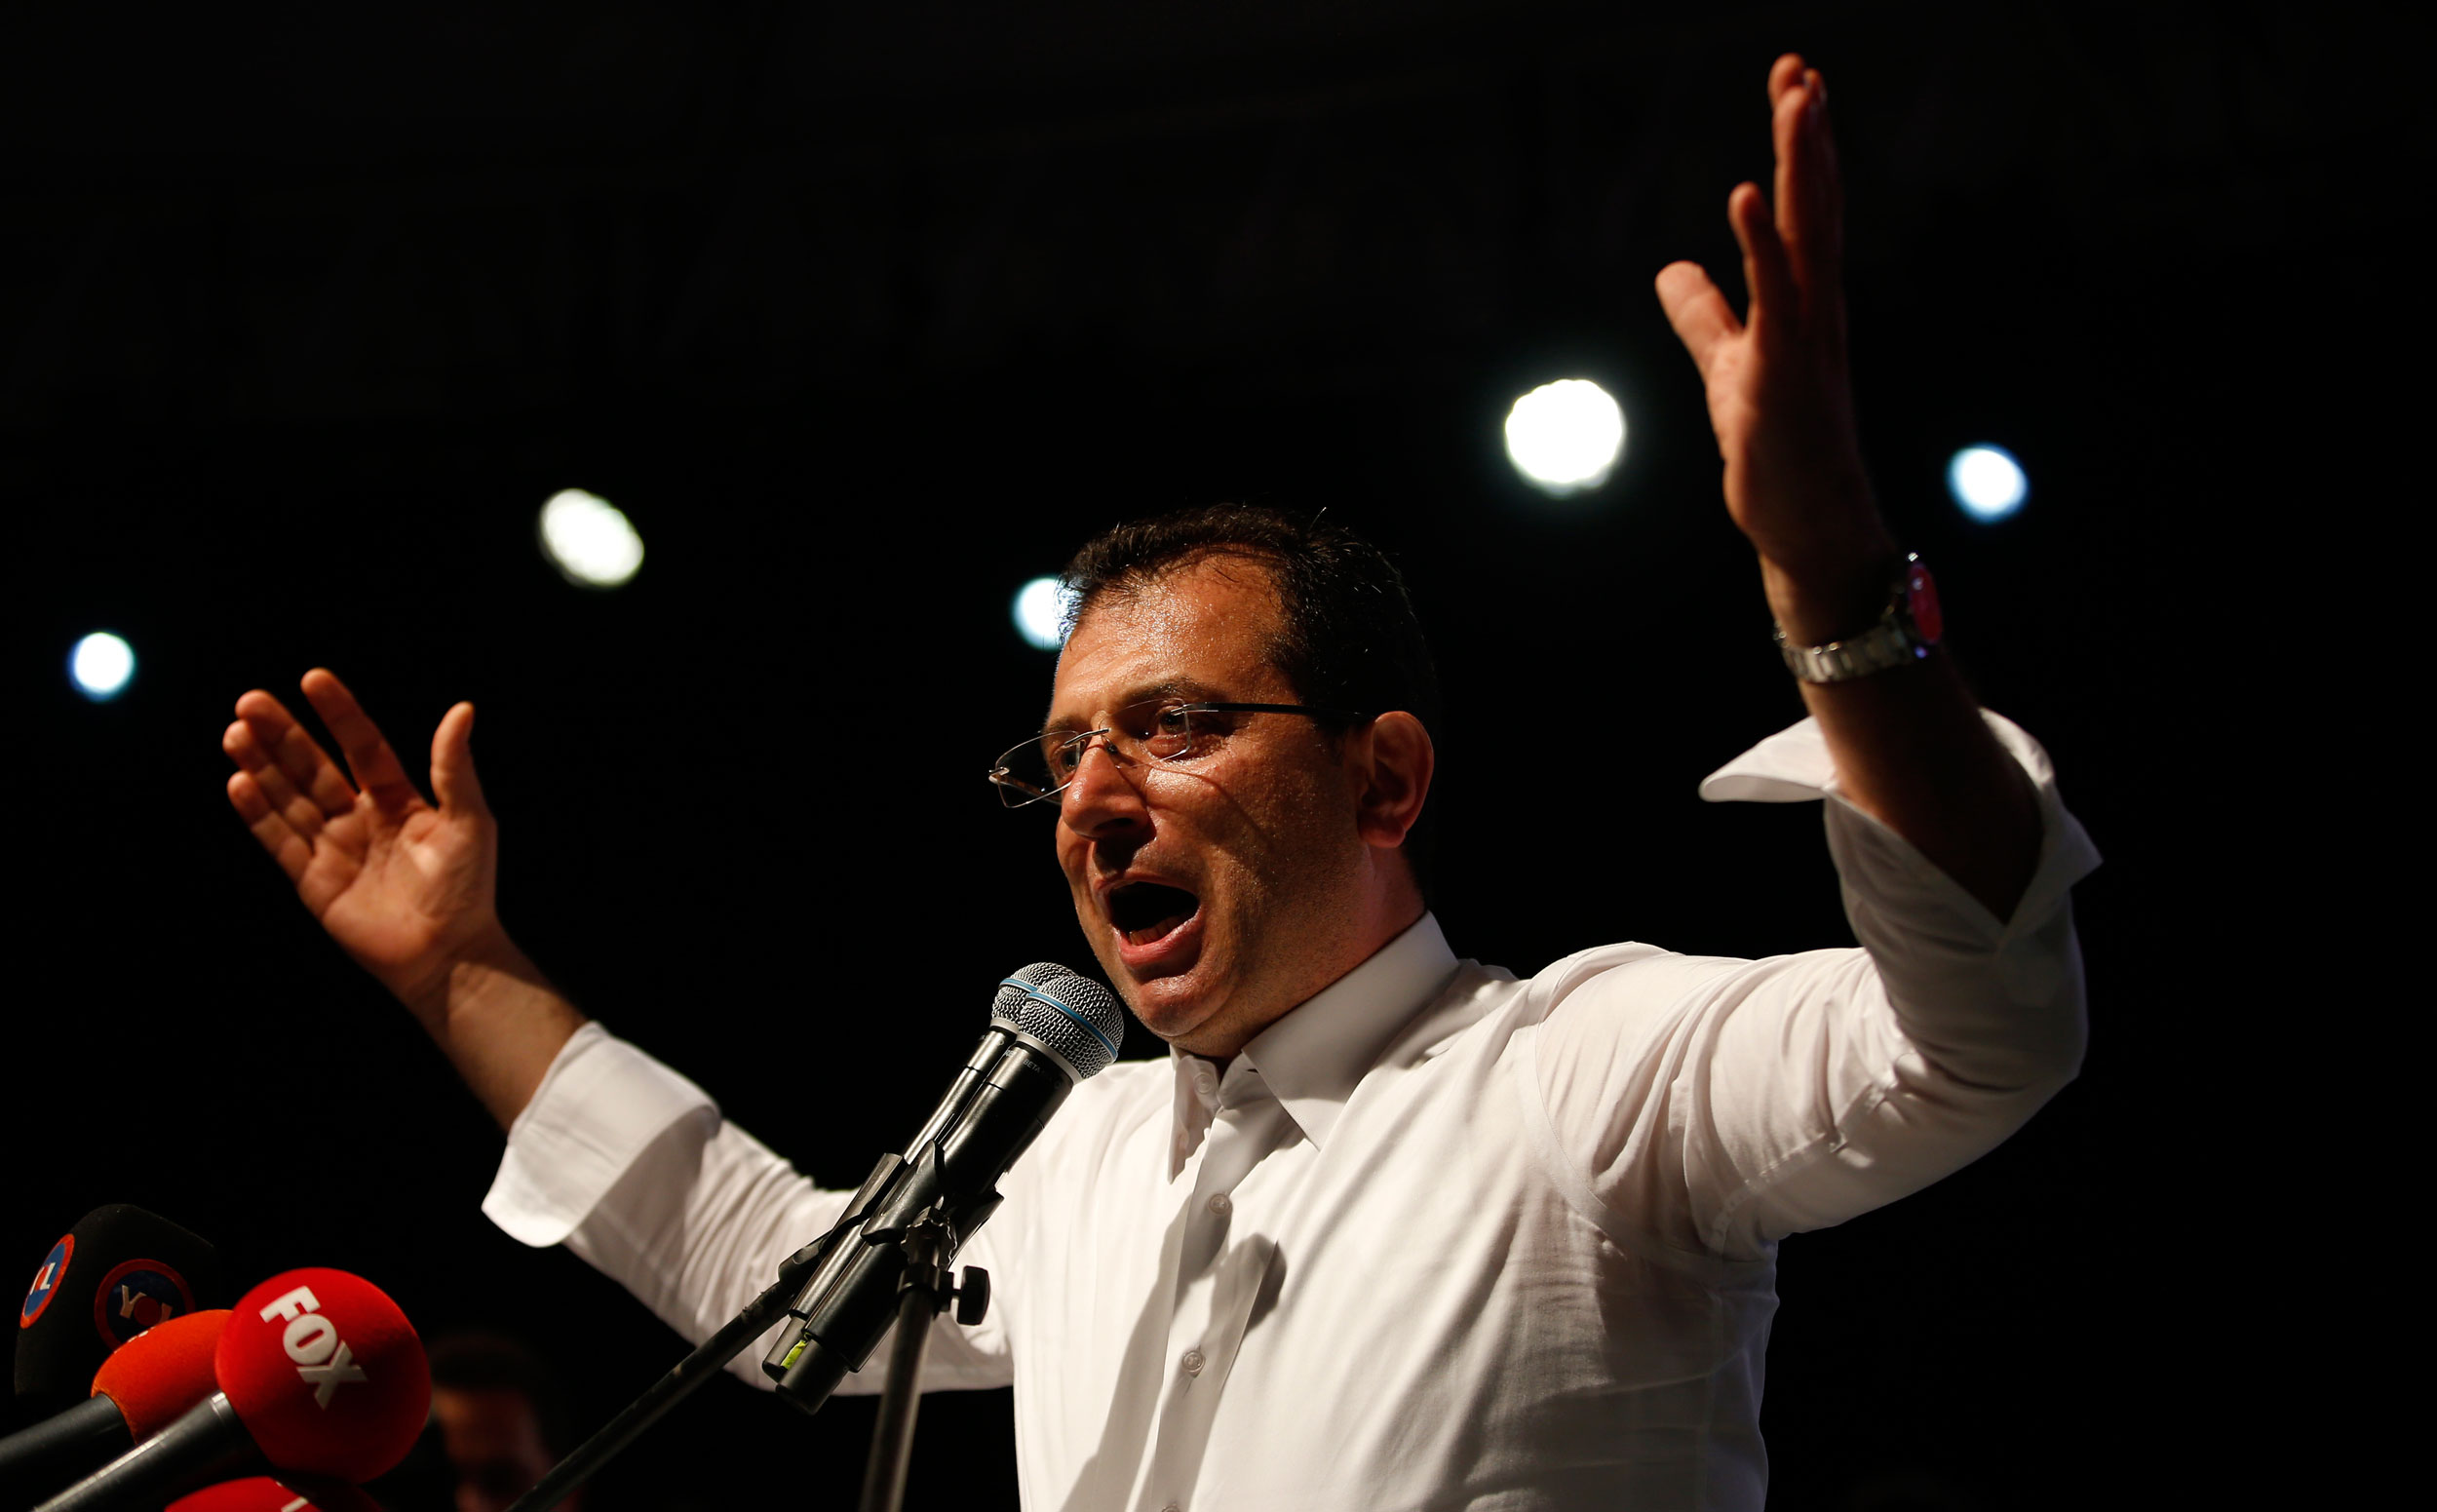 Ekrem Imamoglu during a rally in Istanbul on May 6, 2019.